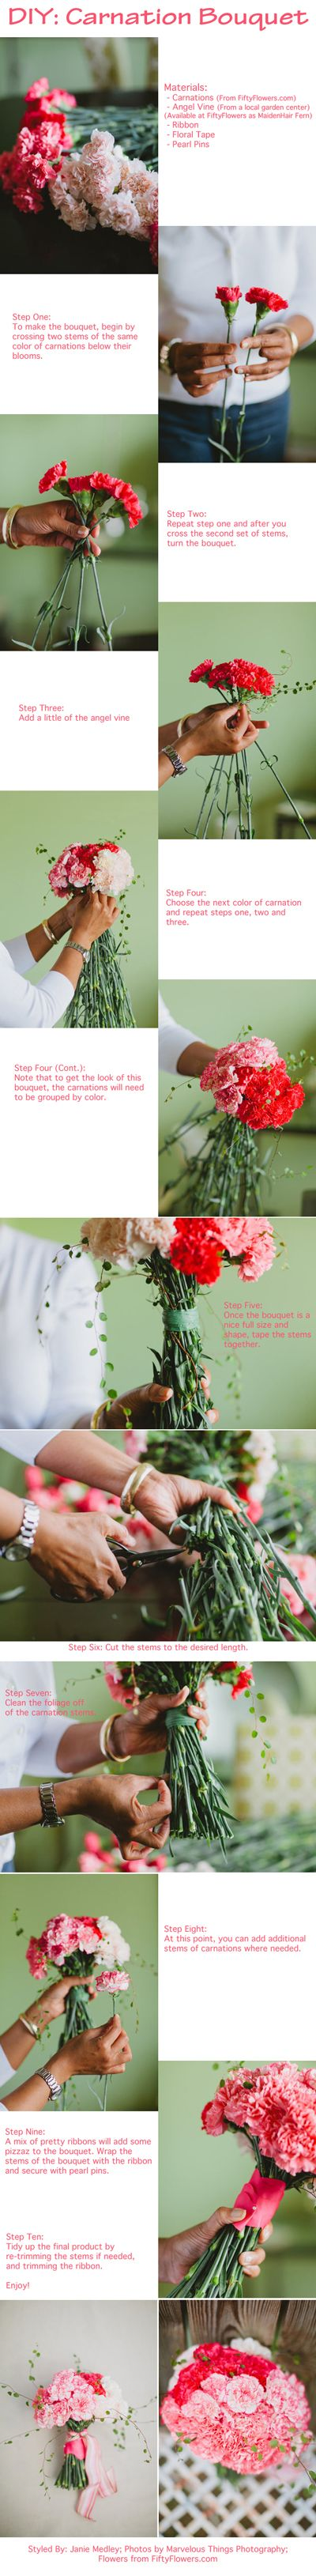 DIY Carnation Bouquet!  Carnations were one of my grandma's favorite, definitely want some of yhesd